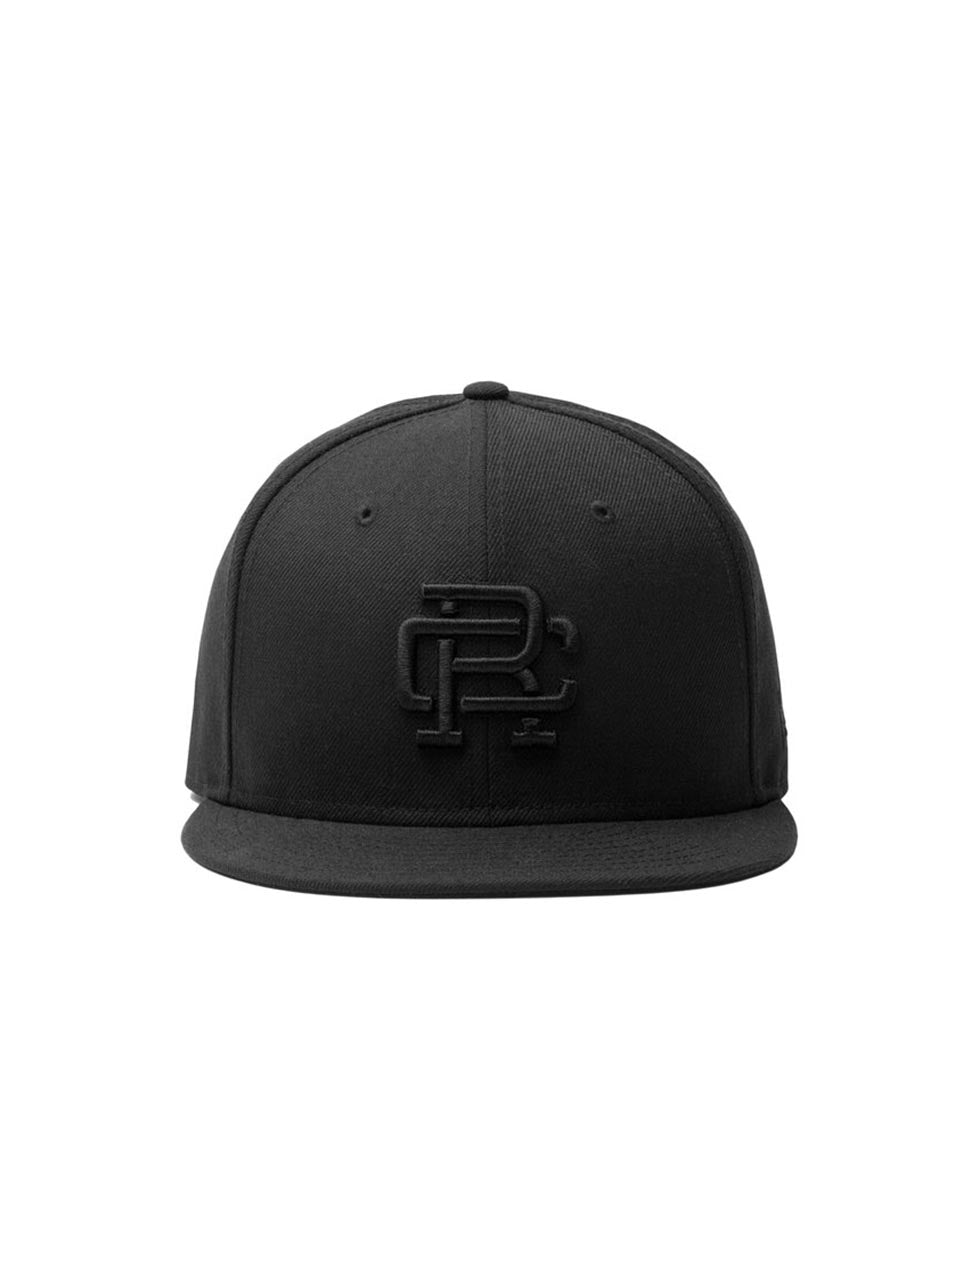 ab774471d2 New Era Reigning Champ Hat - REIGNING CHAMP – Grafic Enterprises Inc.